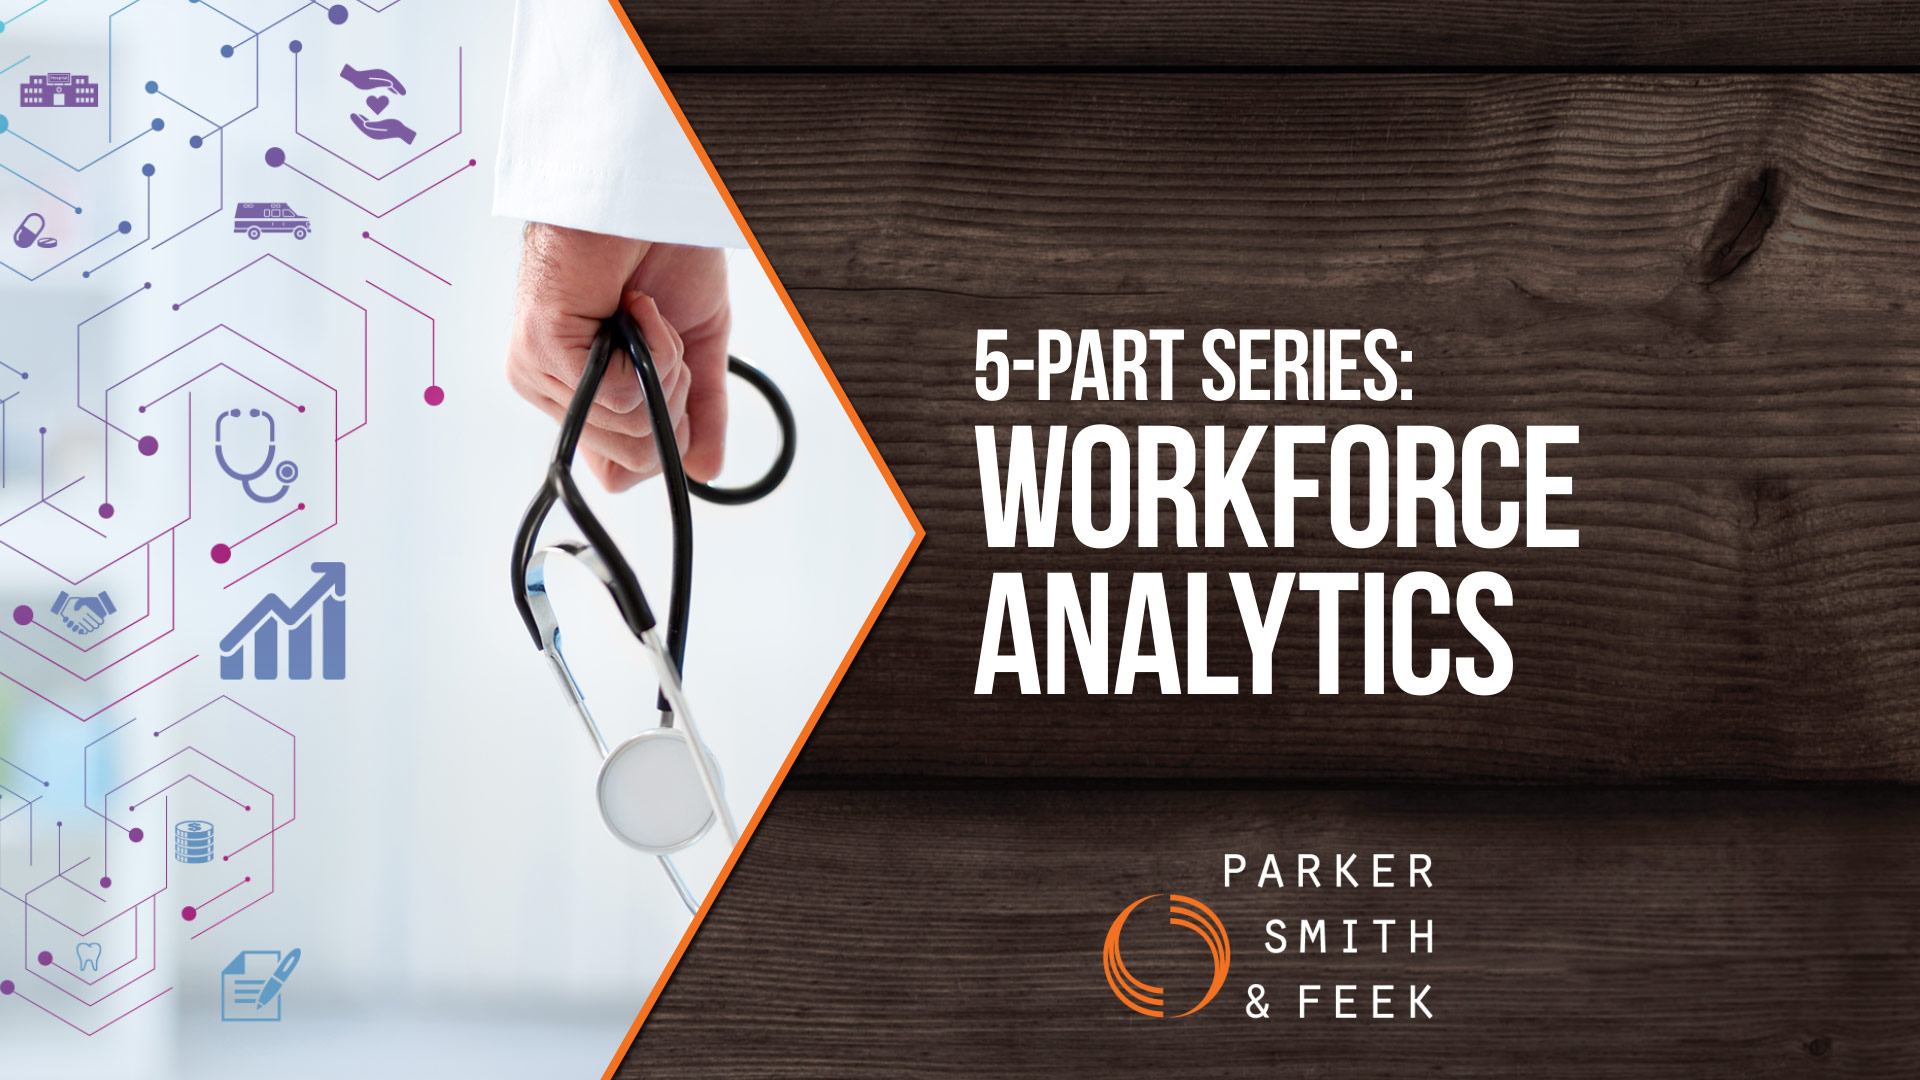 Parker, Smith & Feek, Inc. Account Executive Disa Davis introduces a strategy called workforce analytics to help you make thoughtful and data-driven decisions about your employee benefit plan in the first part of her five-part series